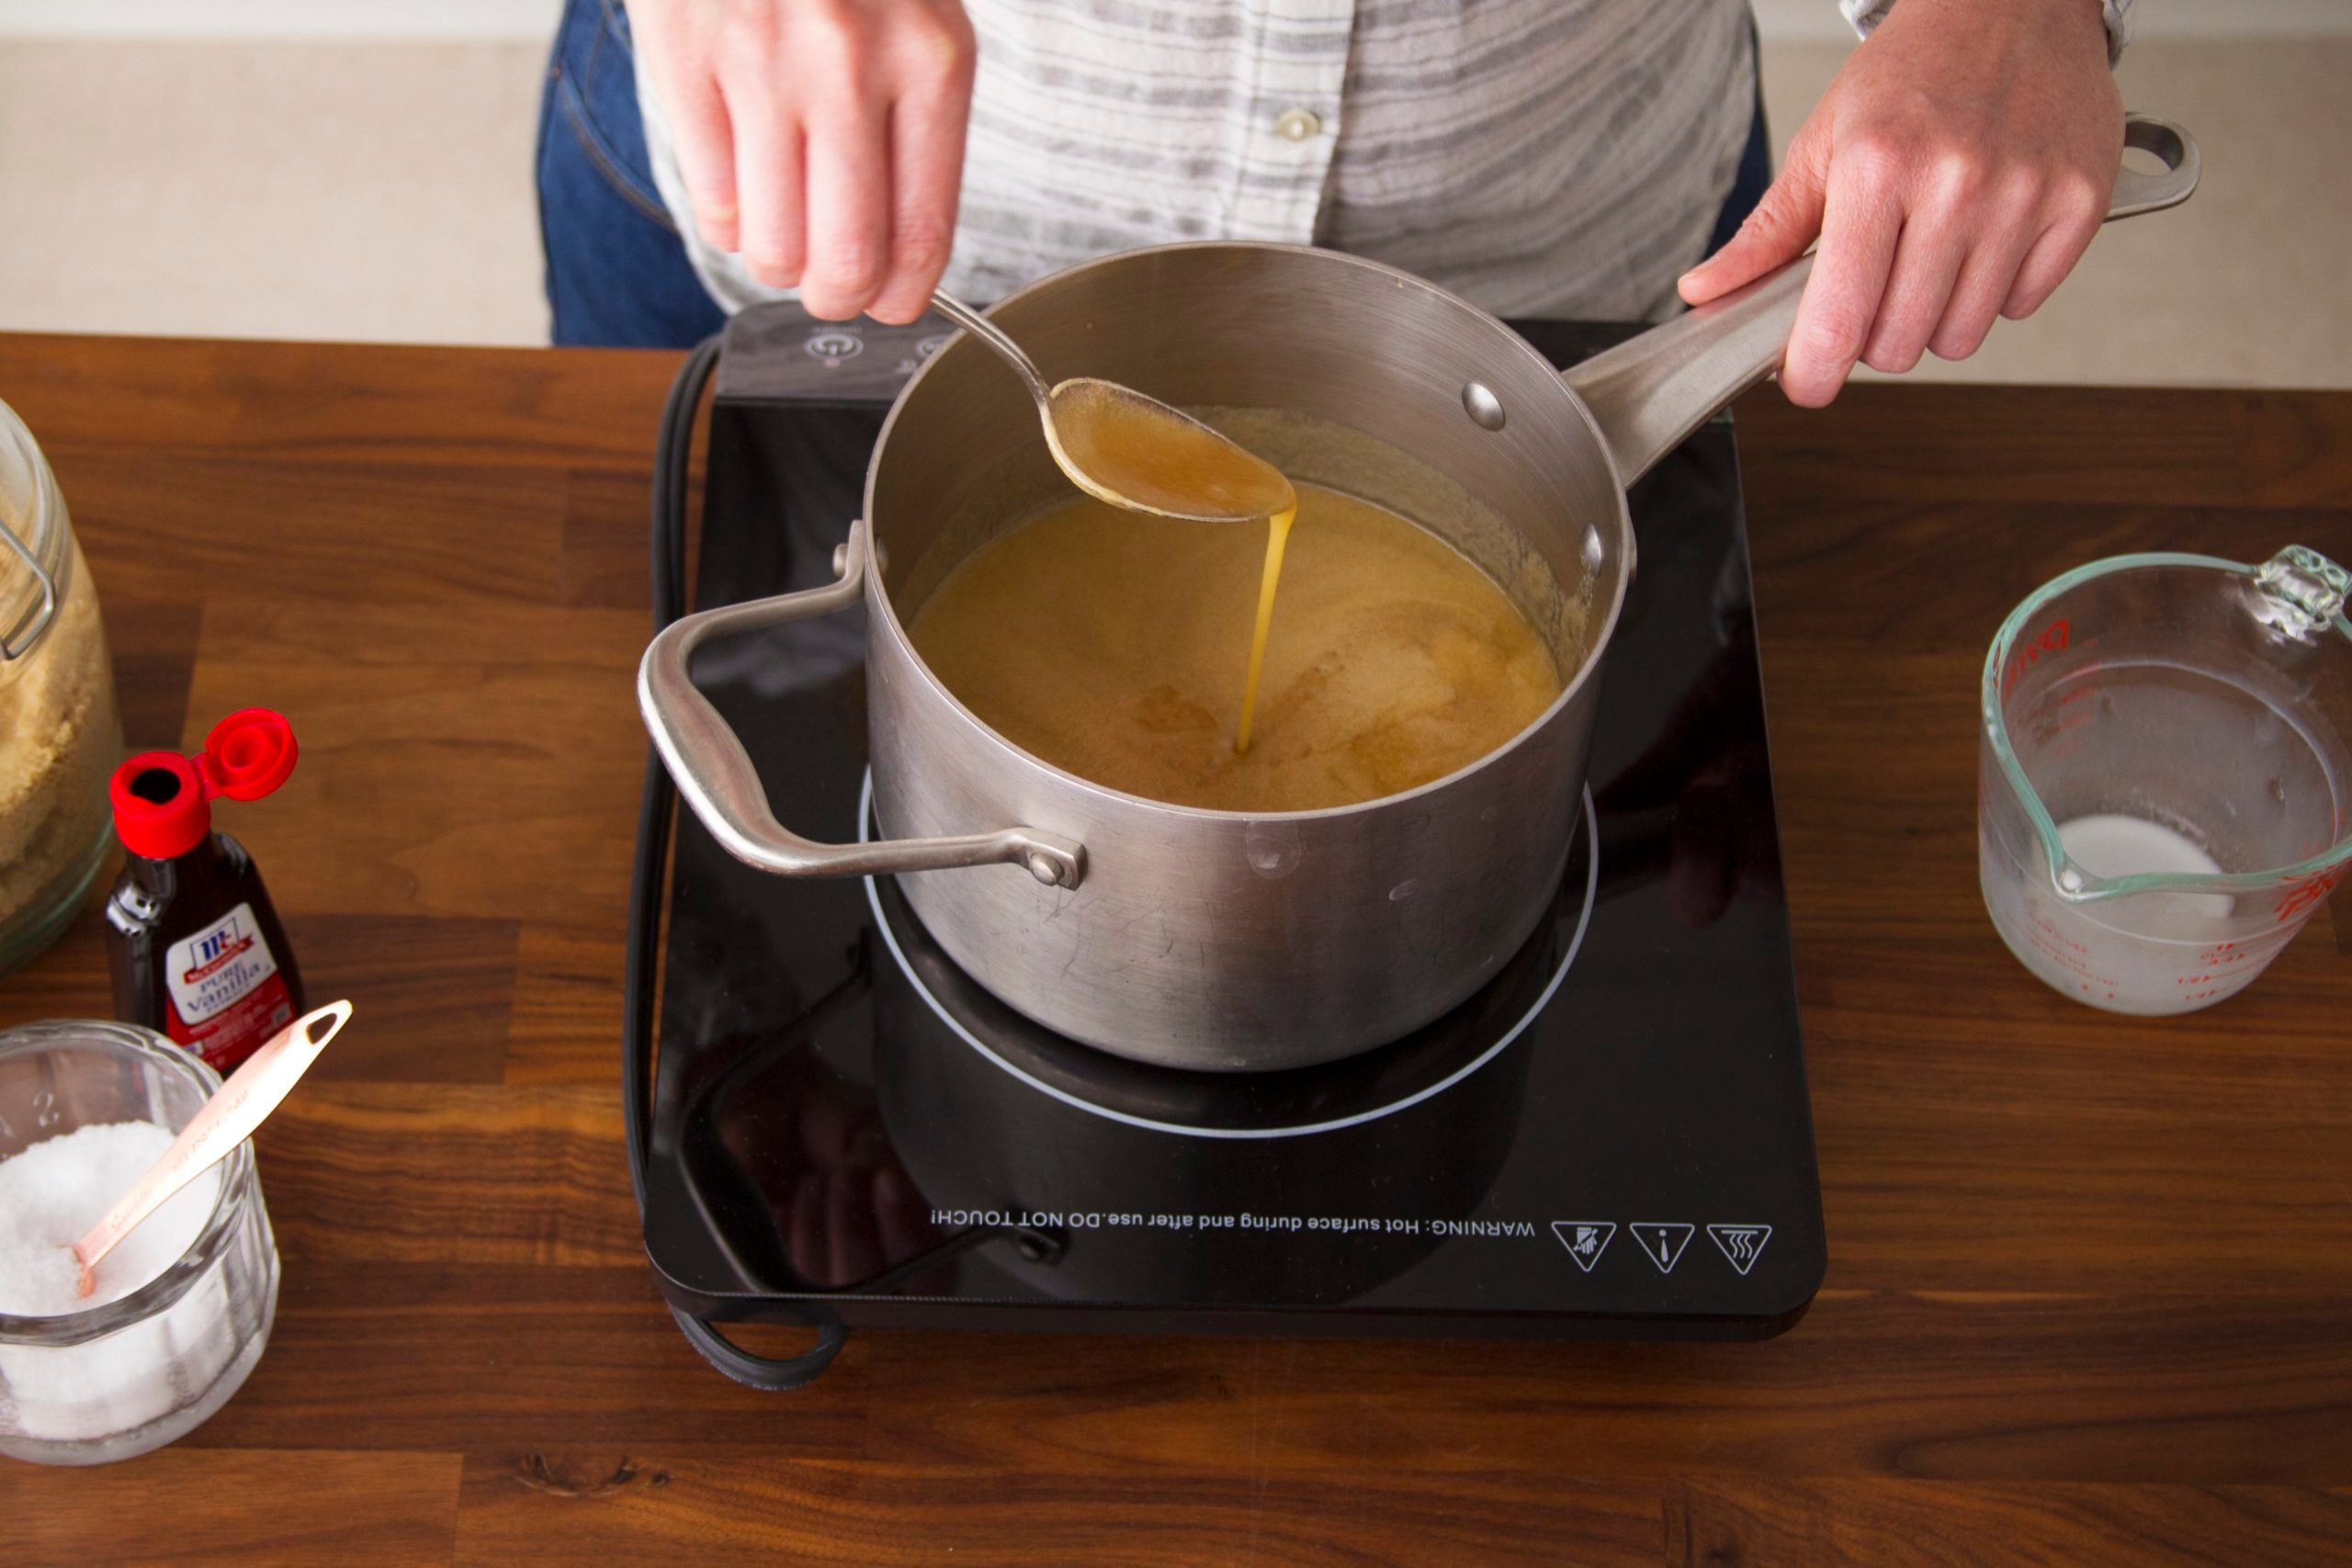 Person stirring melted butter in a saucepan on the stovetop